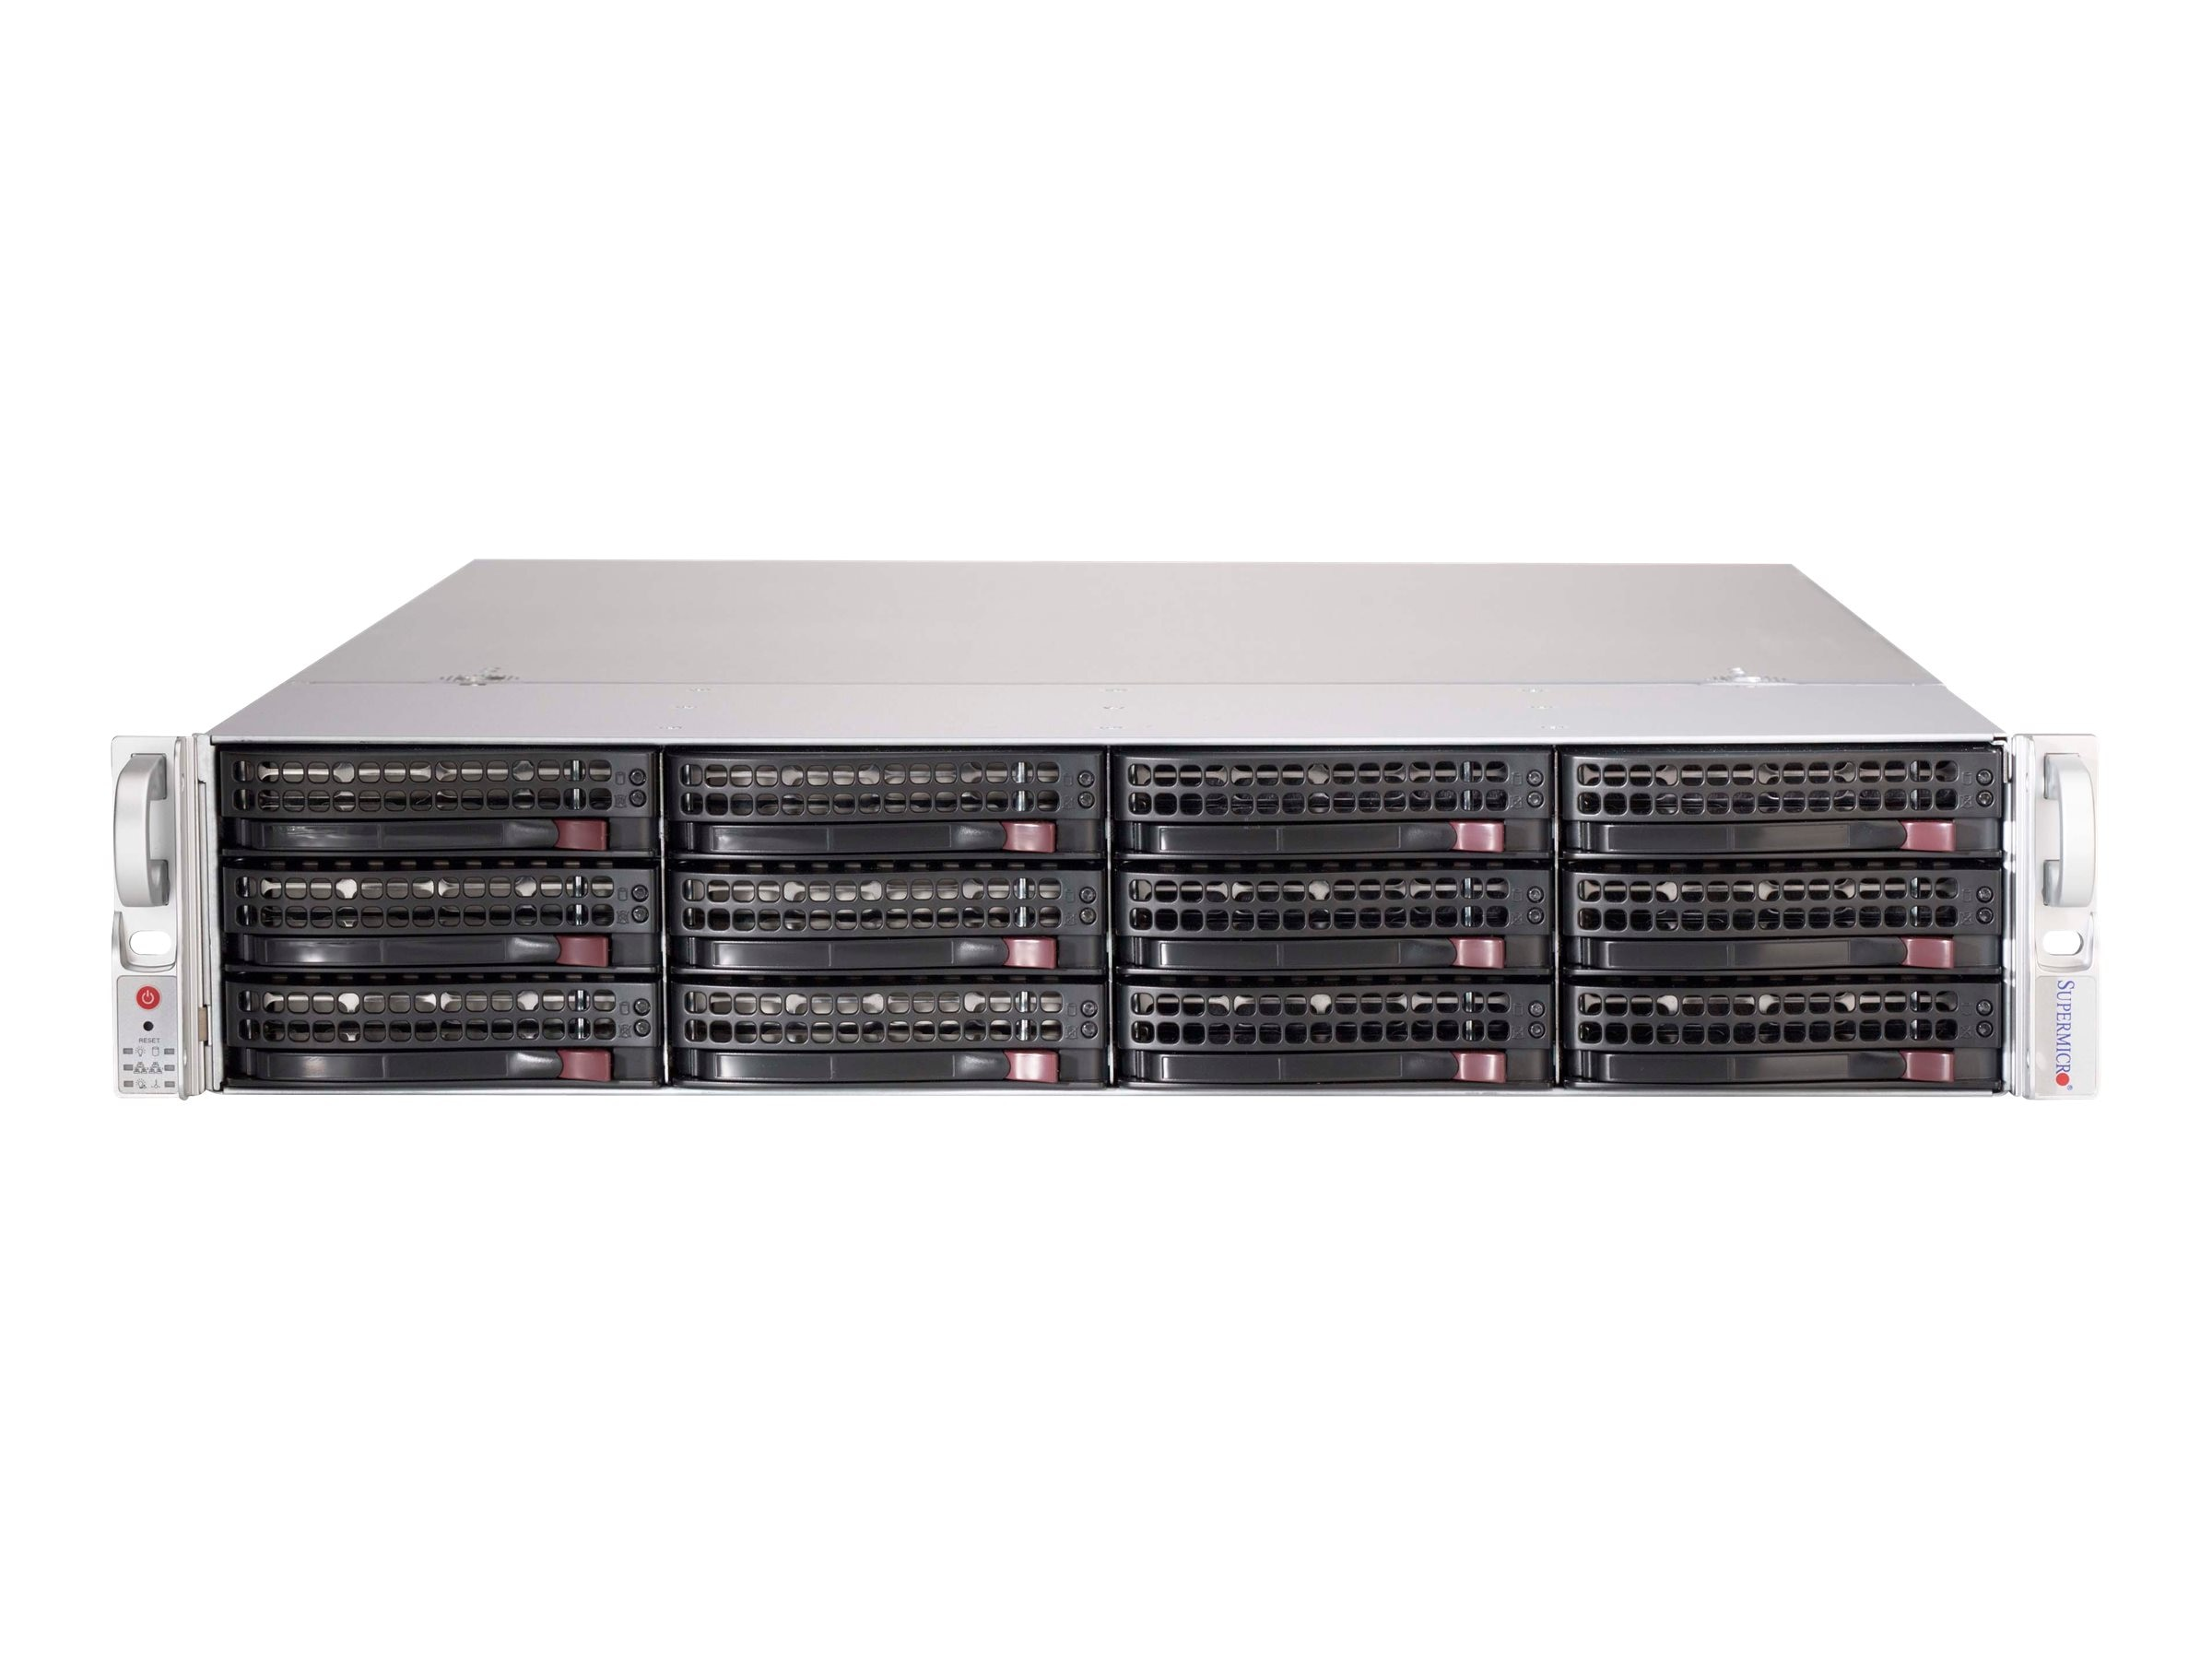 Supermicro Chassis, SuperChassis 826BE1C-R741JBOD 2U RM 12x3.5 HS Bays 2x740W